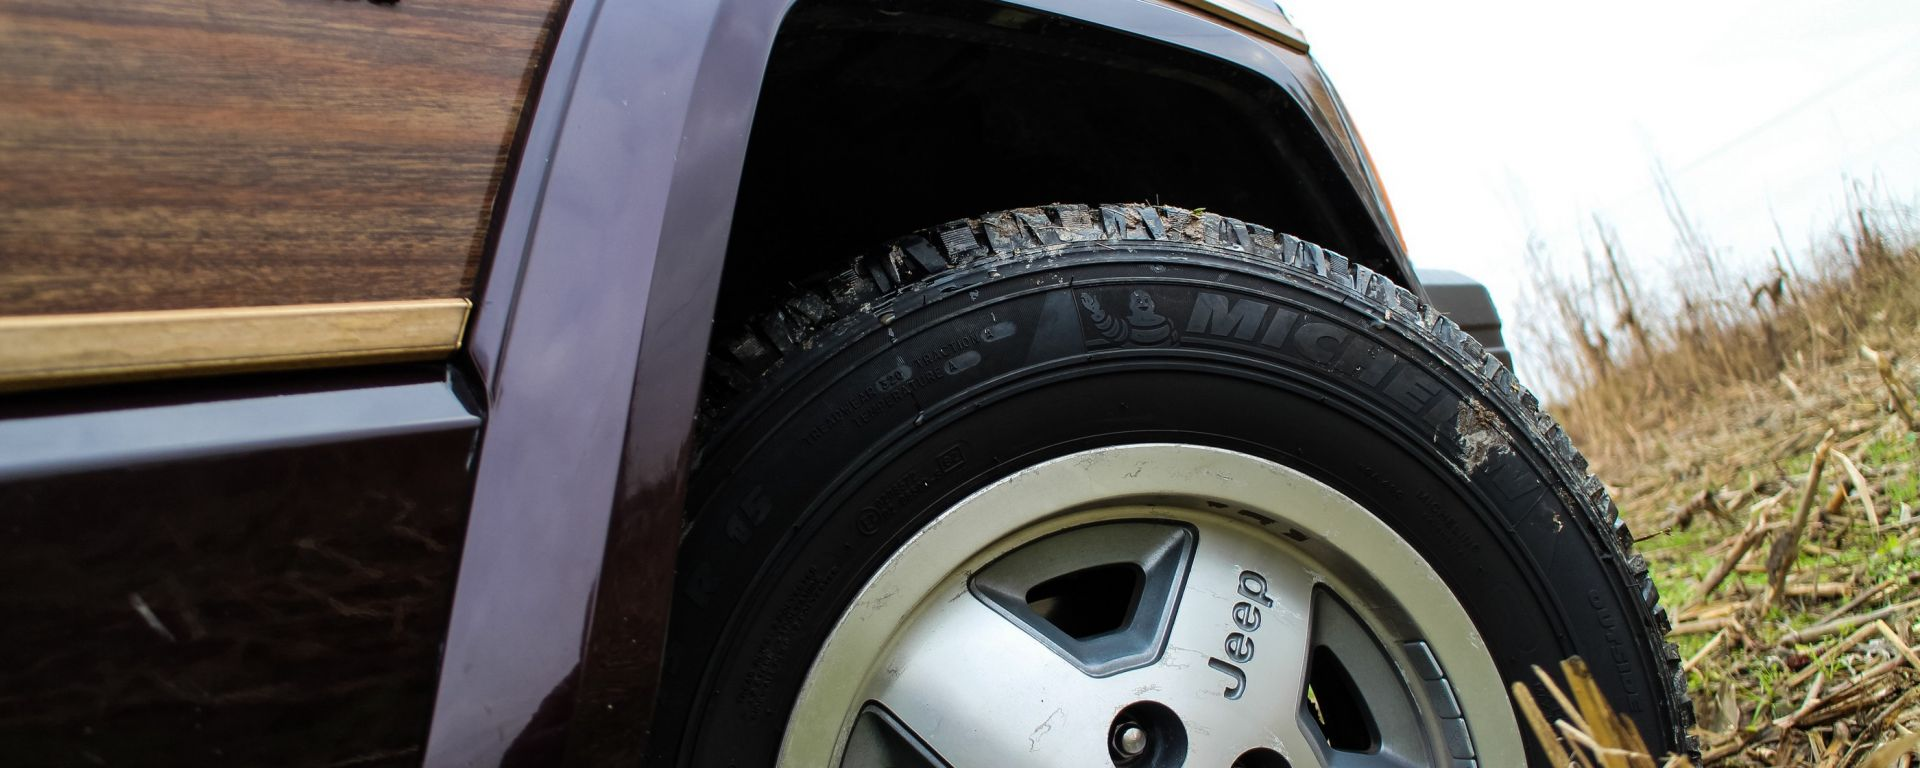 Jeep Wagoneer: gomme e ruote nuove